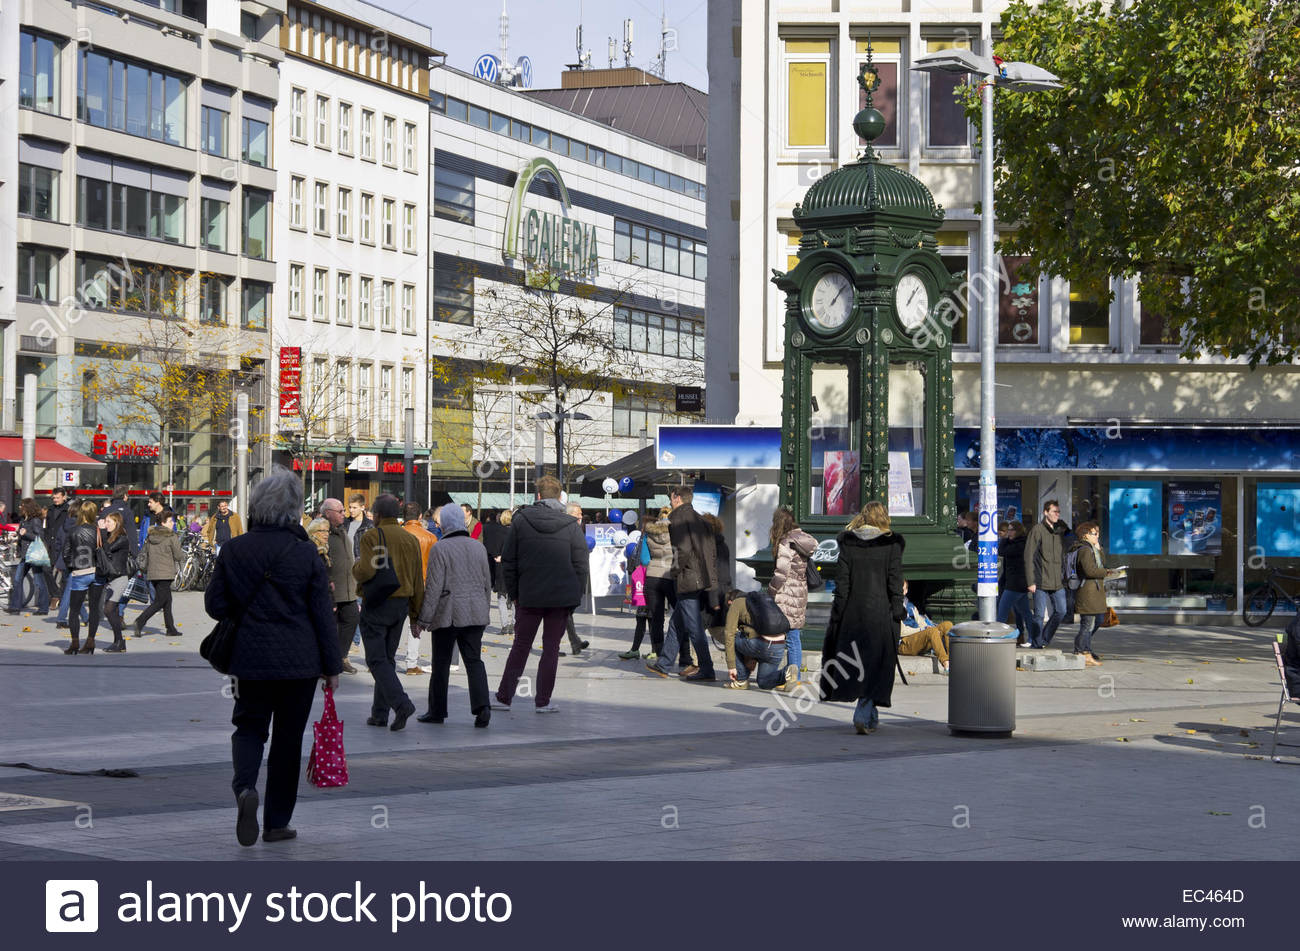 urban scene at the kropcke hannover germany stock photo. Black Bedroom Furniture Sets. Home Design Ideas